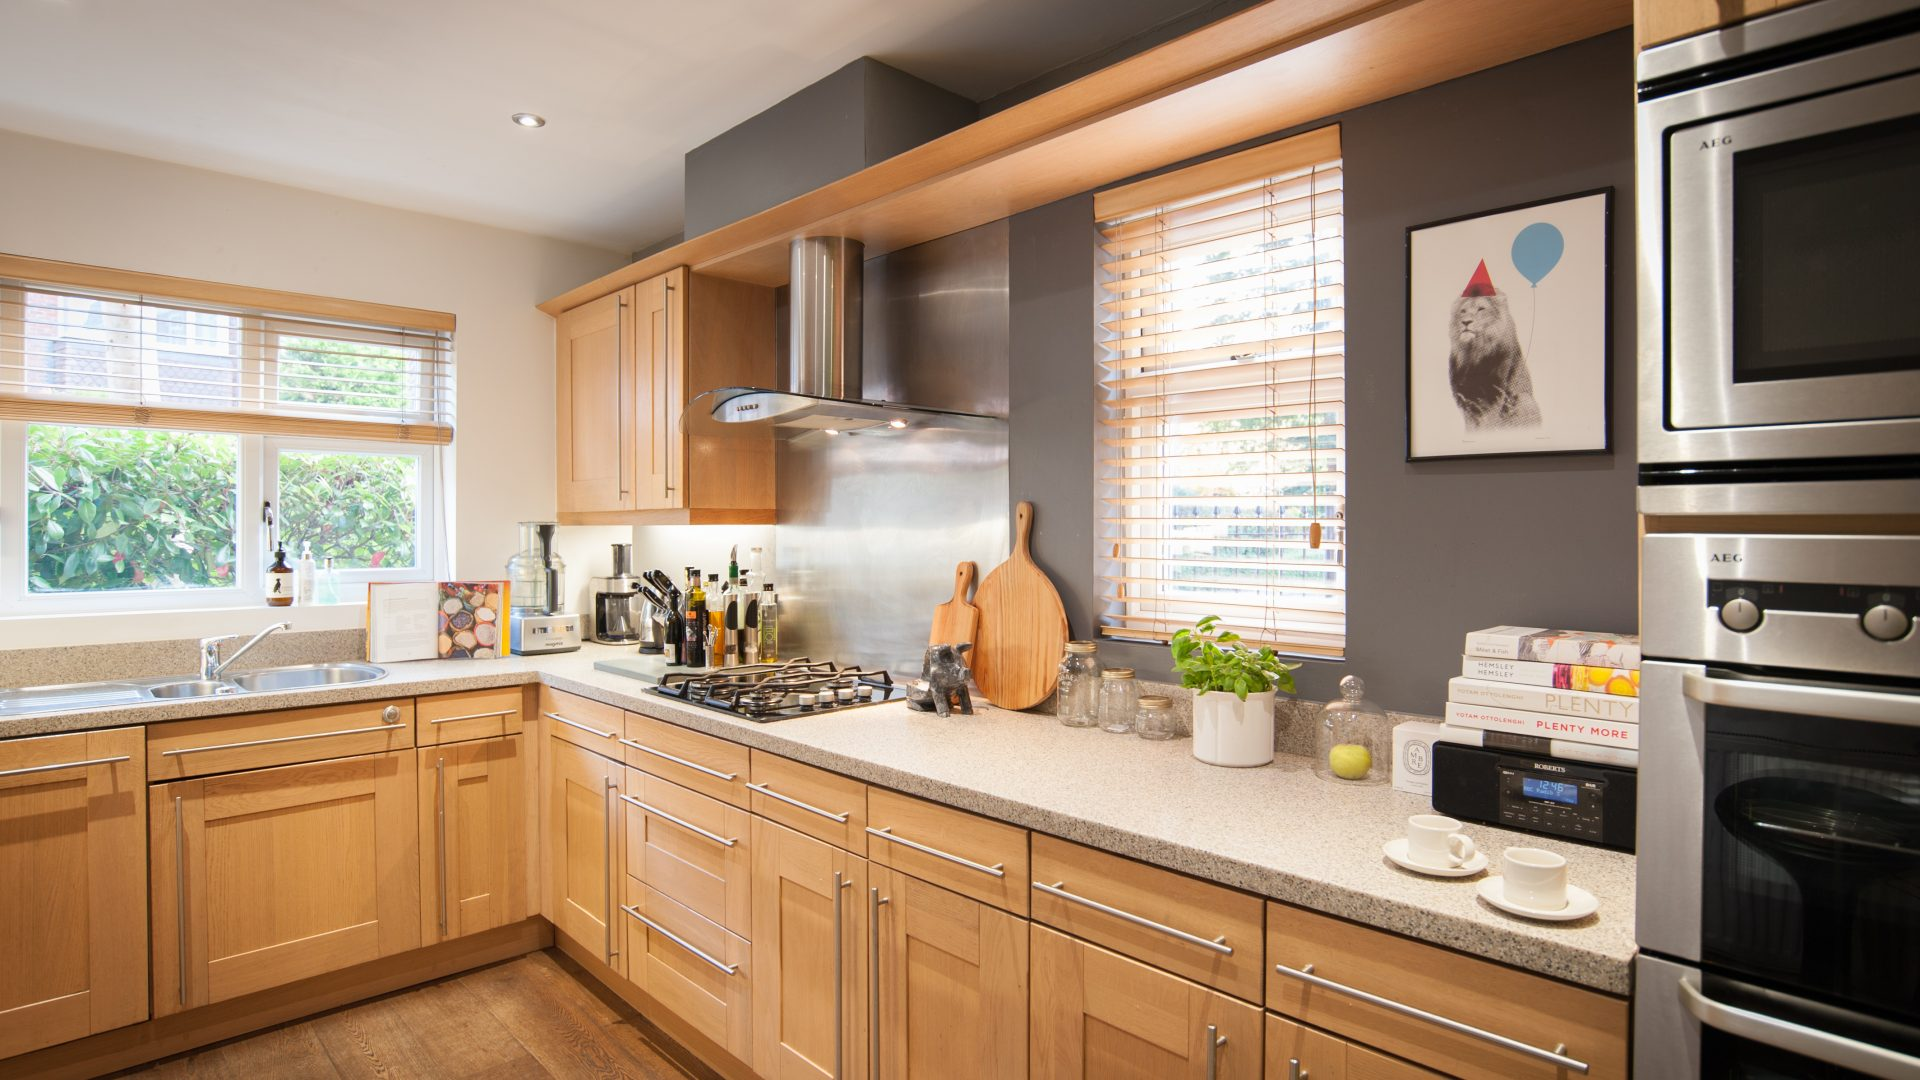 Peterhouse Mews, Moseley for sale with Mr and Mrs Clarke estate agent